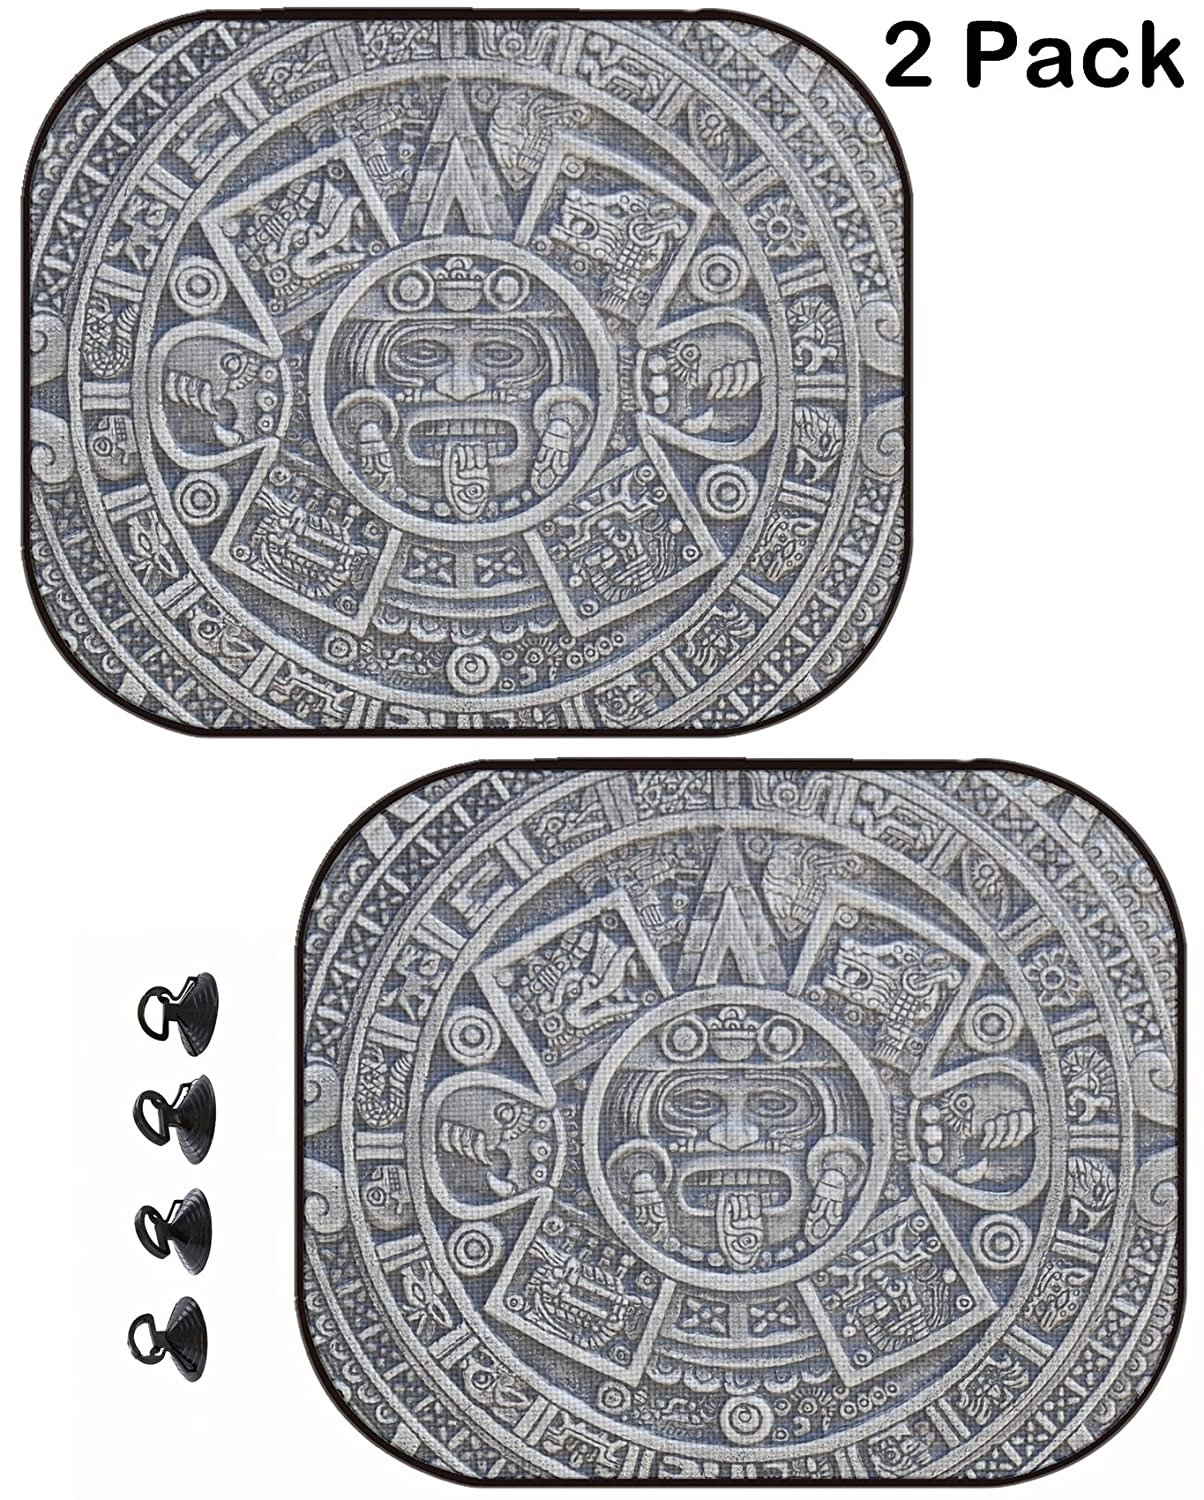 MSD Car Sun Shade Protector Side Window Block Damaging UV Rays Sunlight Heat for All Vehicles, 2 Pack Image ID 34606955 Aztec History Texture as Nice Stone Background